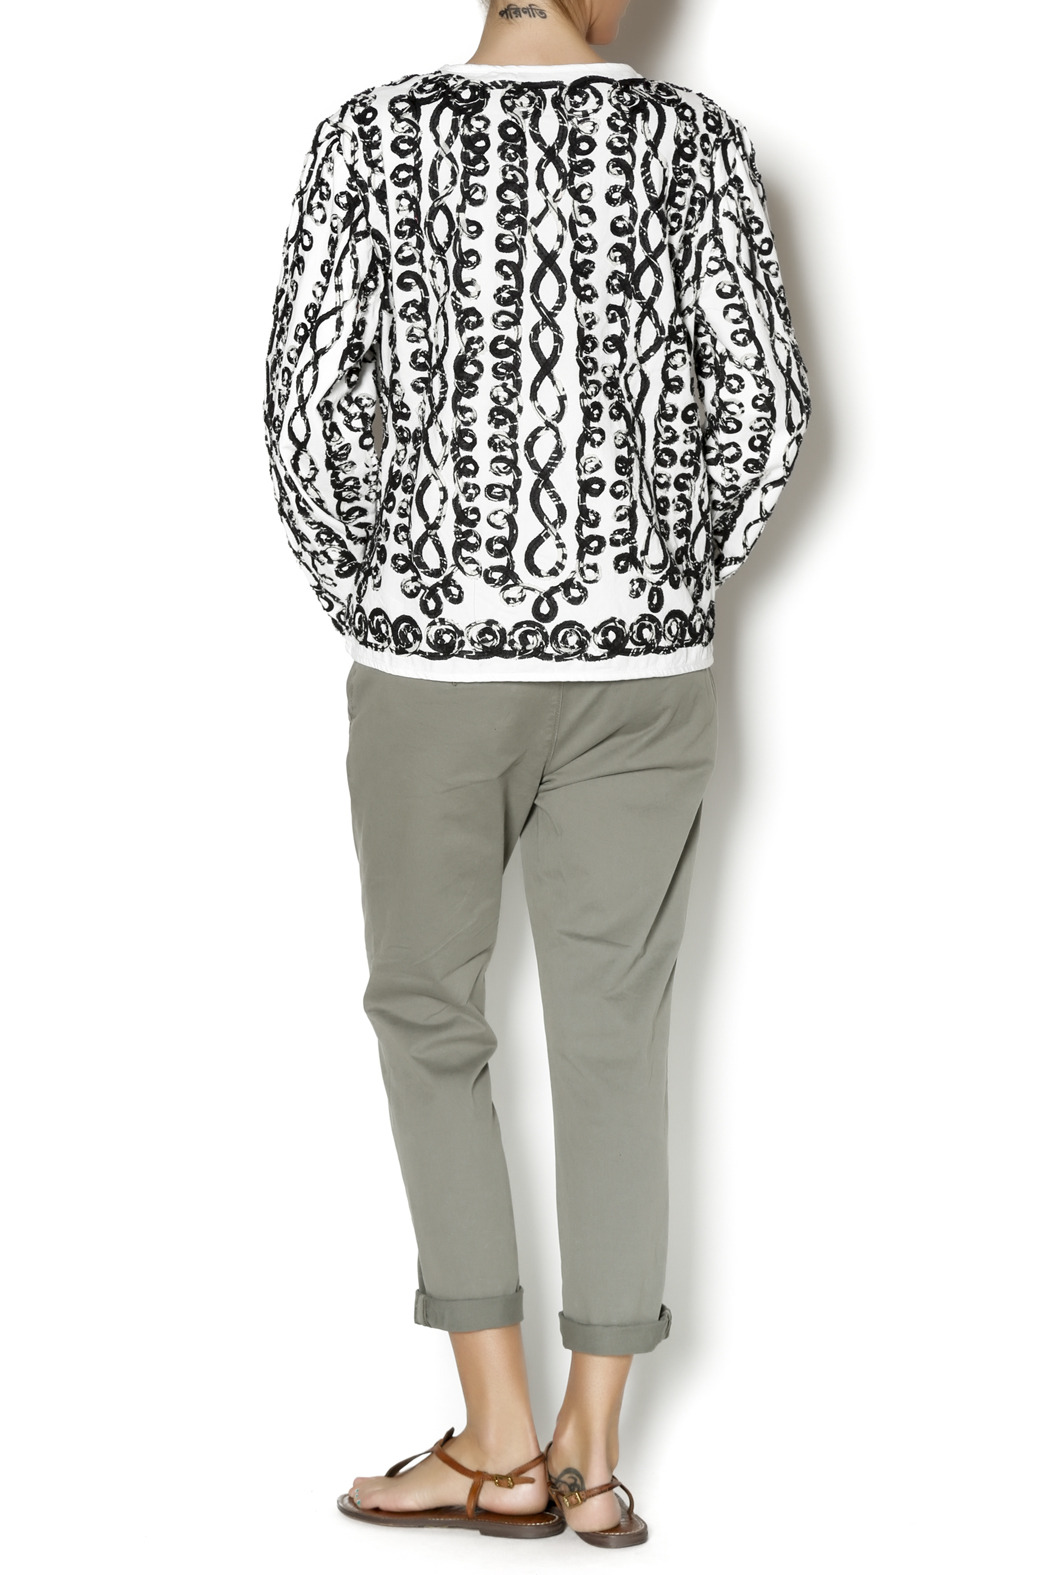 Keren Hart Black White Cardigan - Side Cropped Image